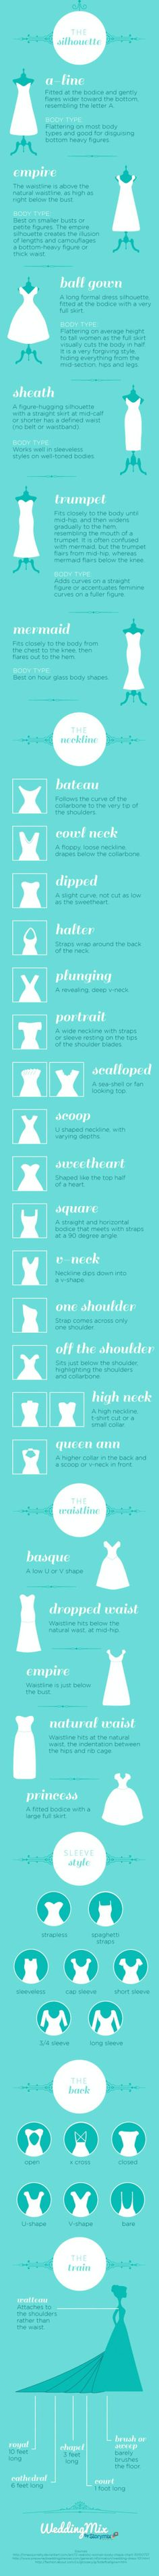 Really helpful visual guide to wedding dress styles & shapes. by Mibralegare